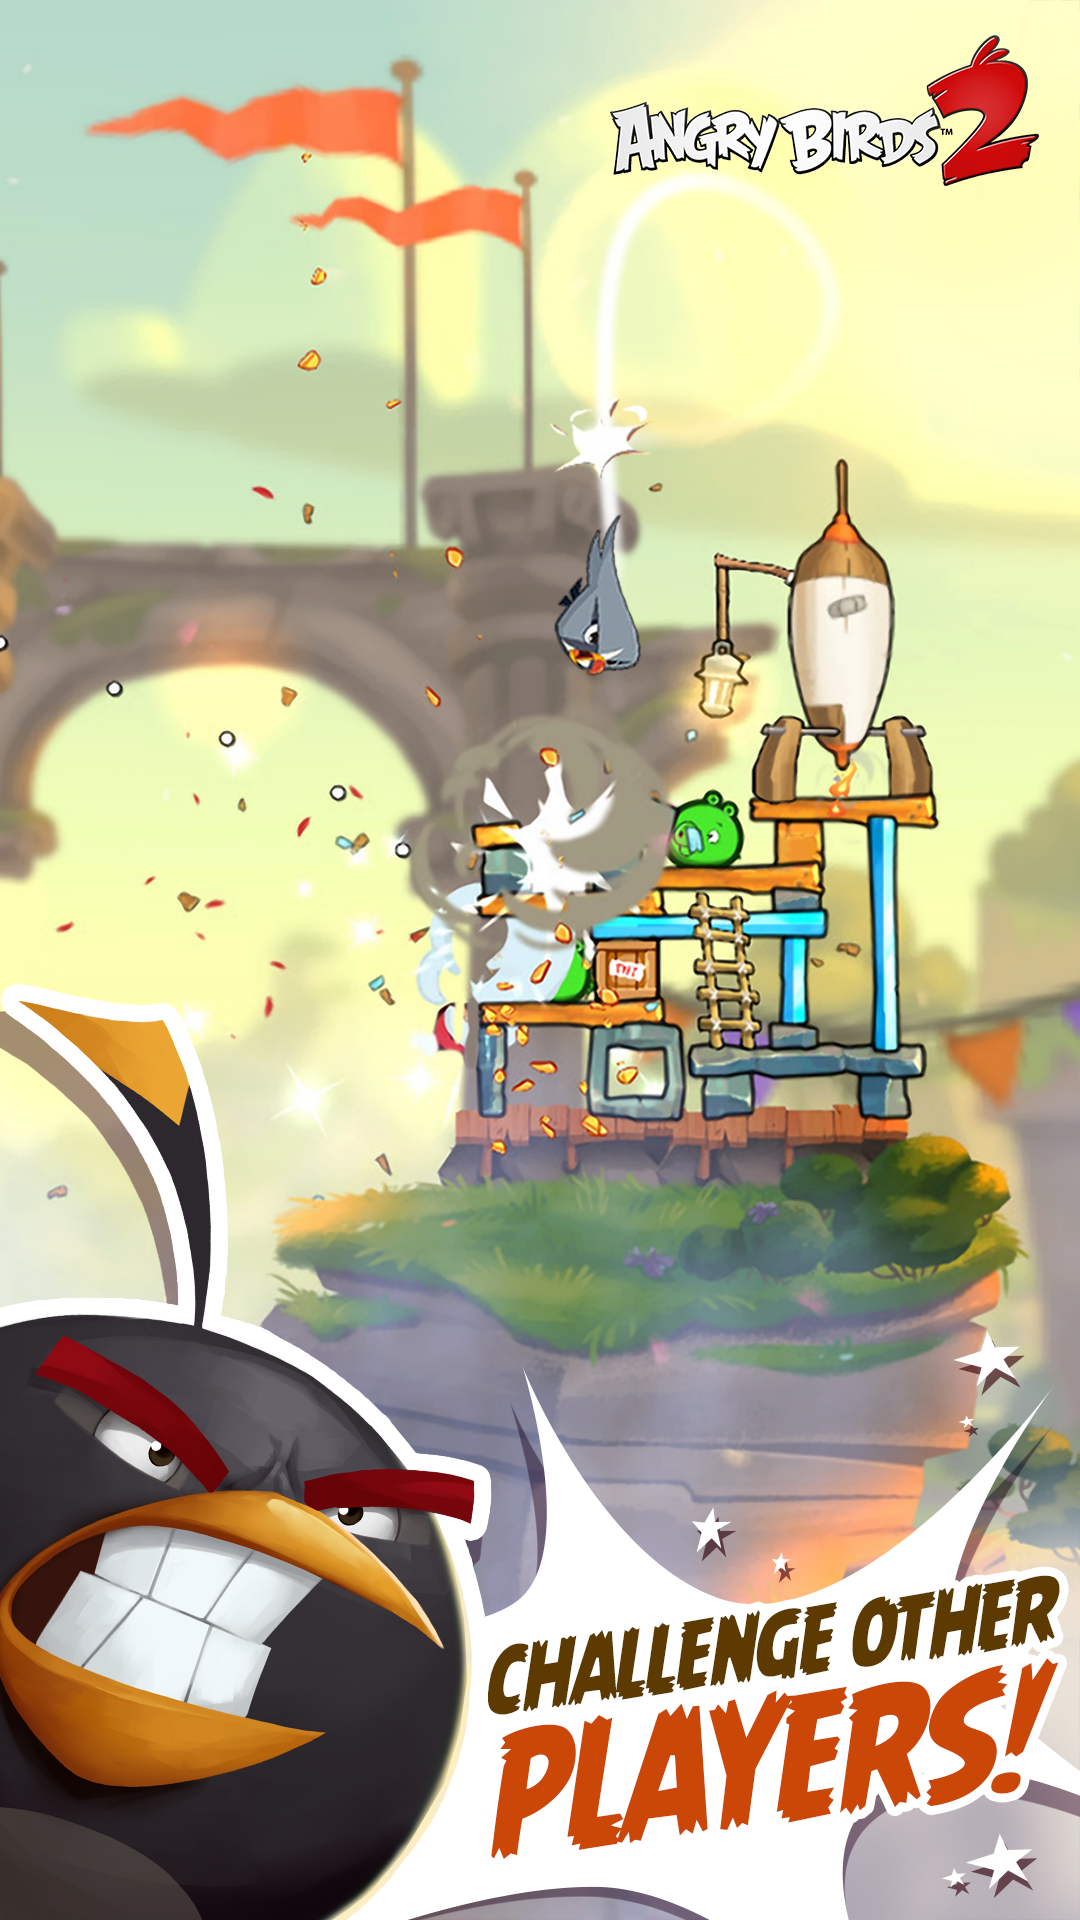 Angry Birds 2 screenshot #7